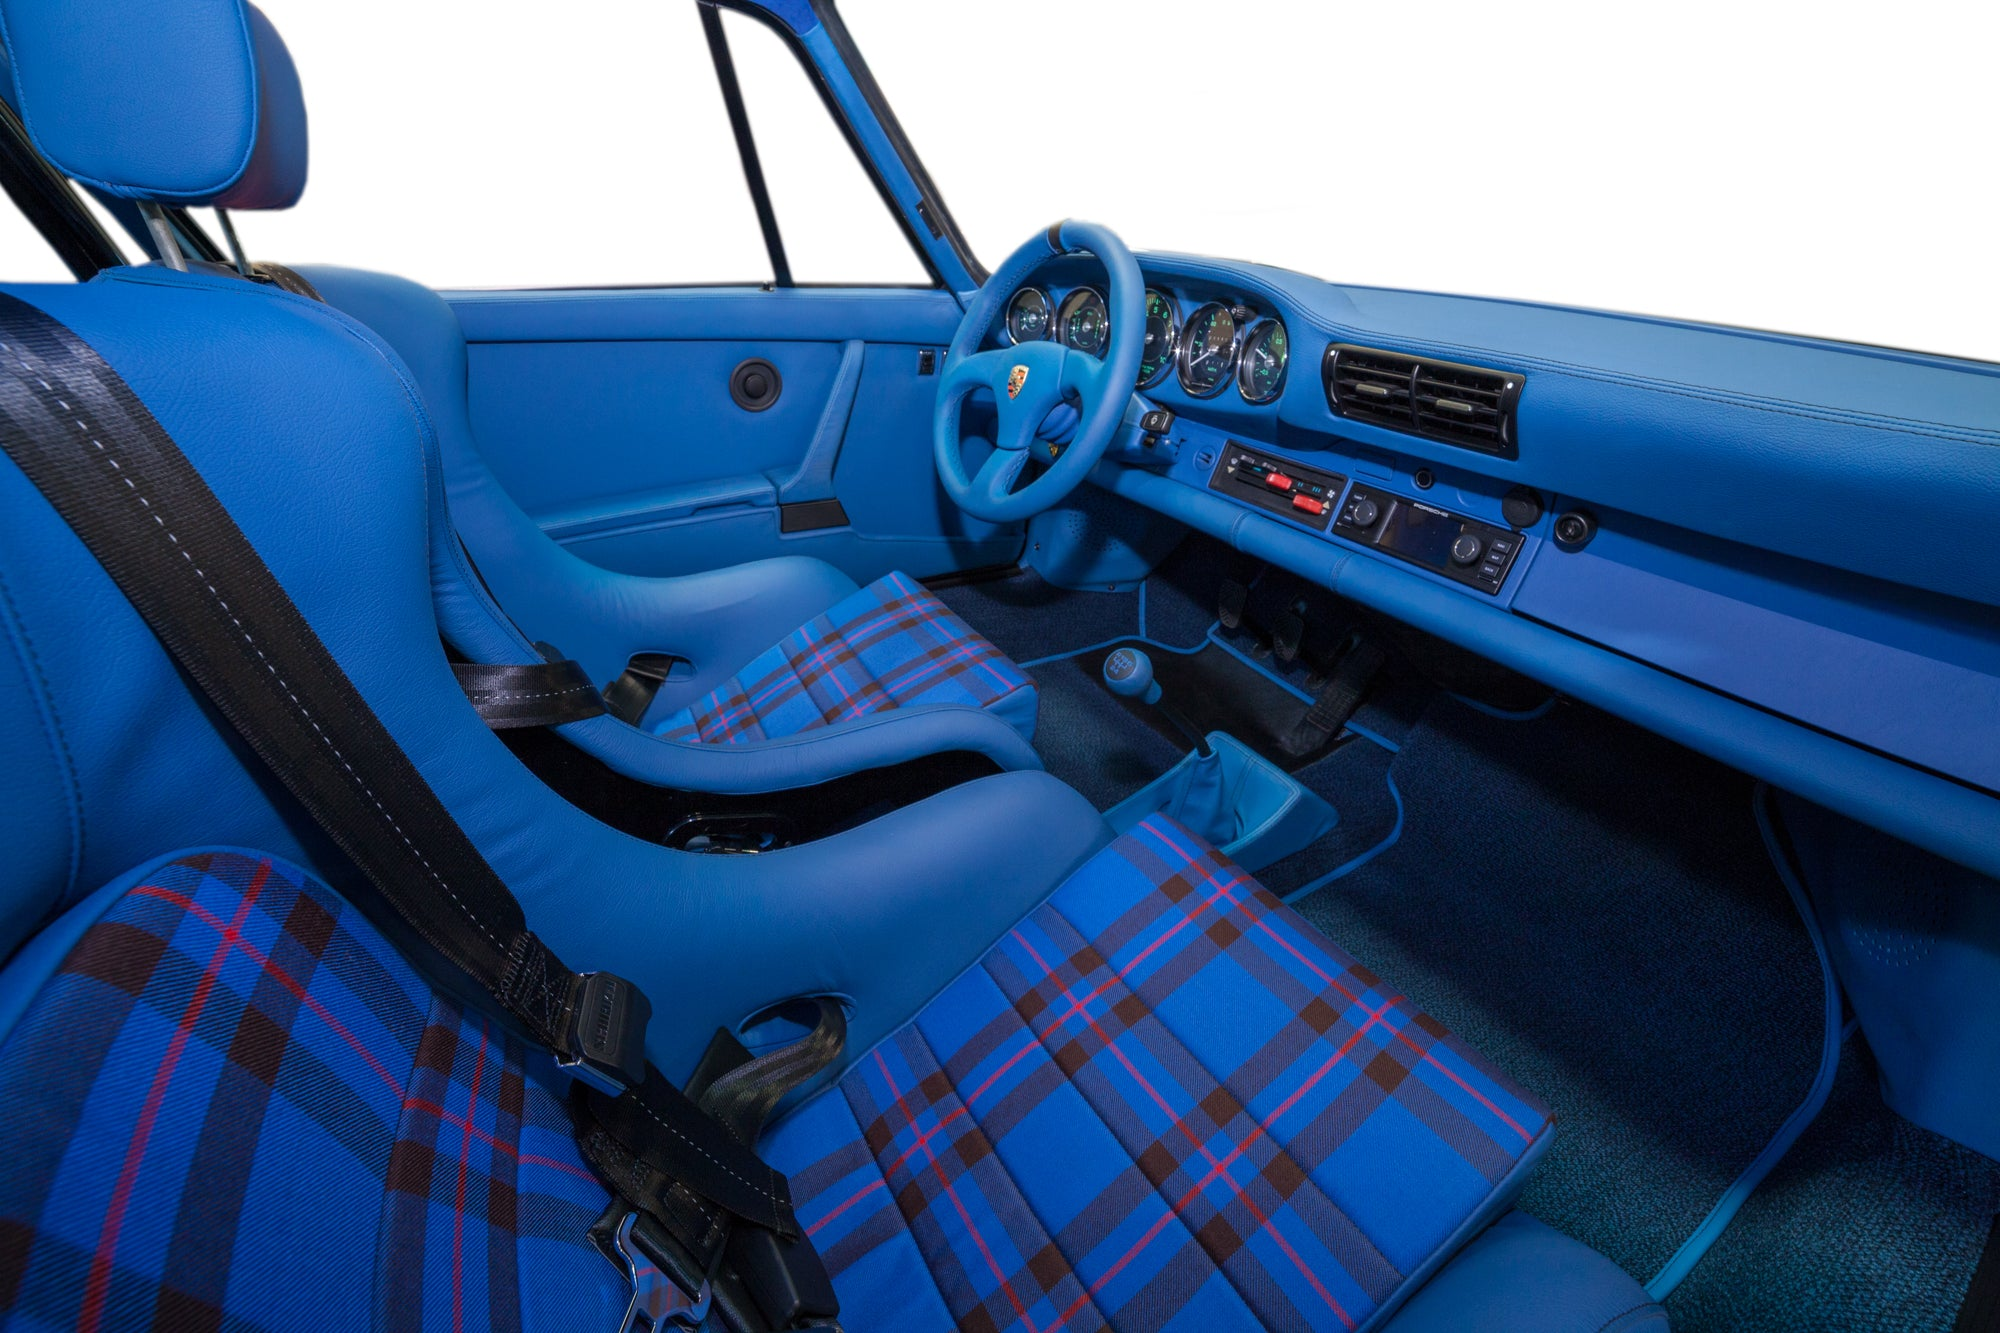 1986 Porsche 930 911 rsr turbo interior